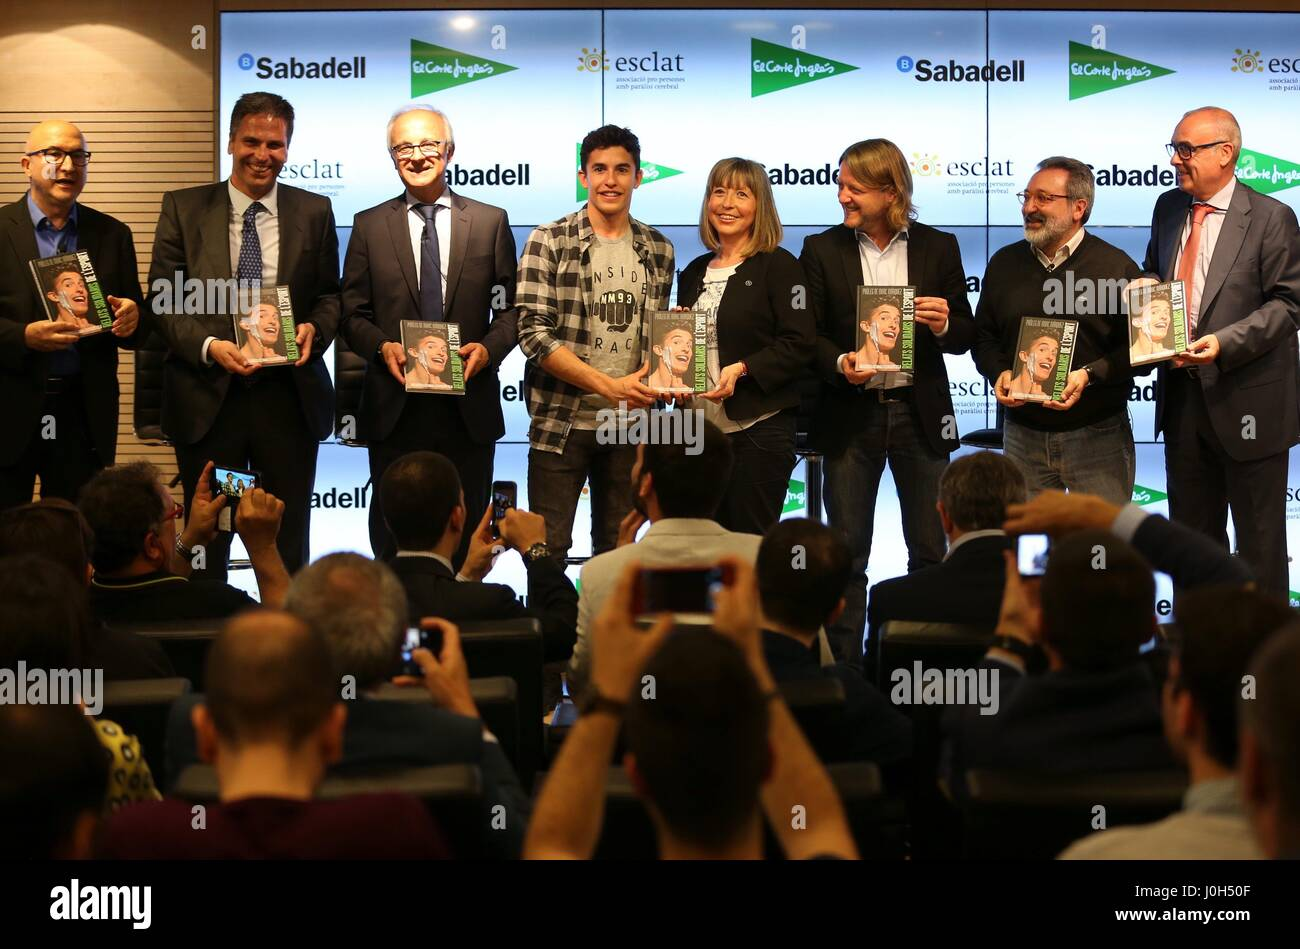 Barcelona, Spain. 13th Apr, 2017. Spanish MotoGP rider Marc Marquez (C-L) poses with other personalities during - Stock Image